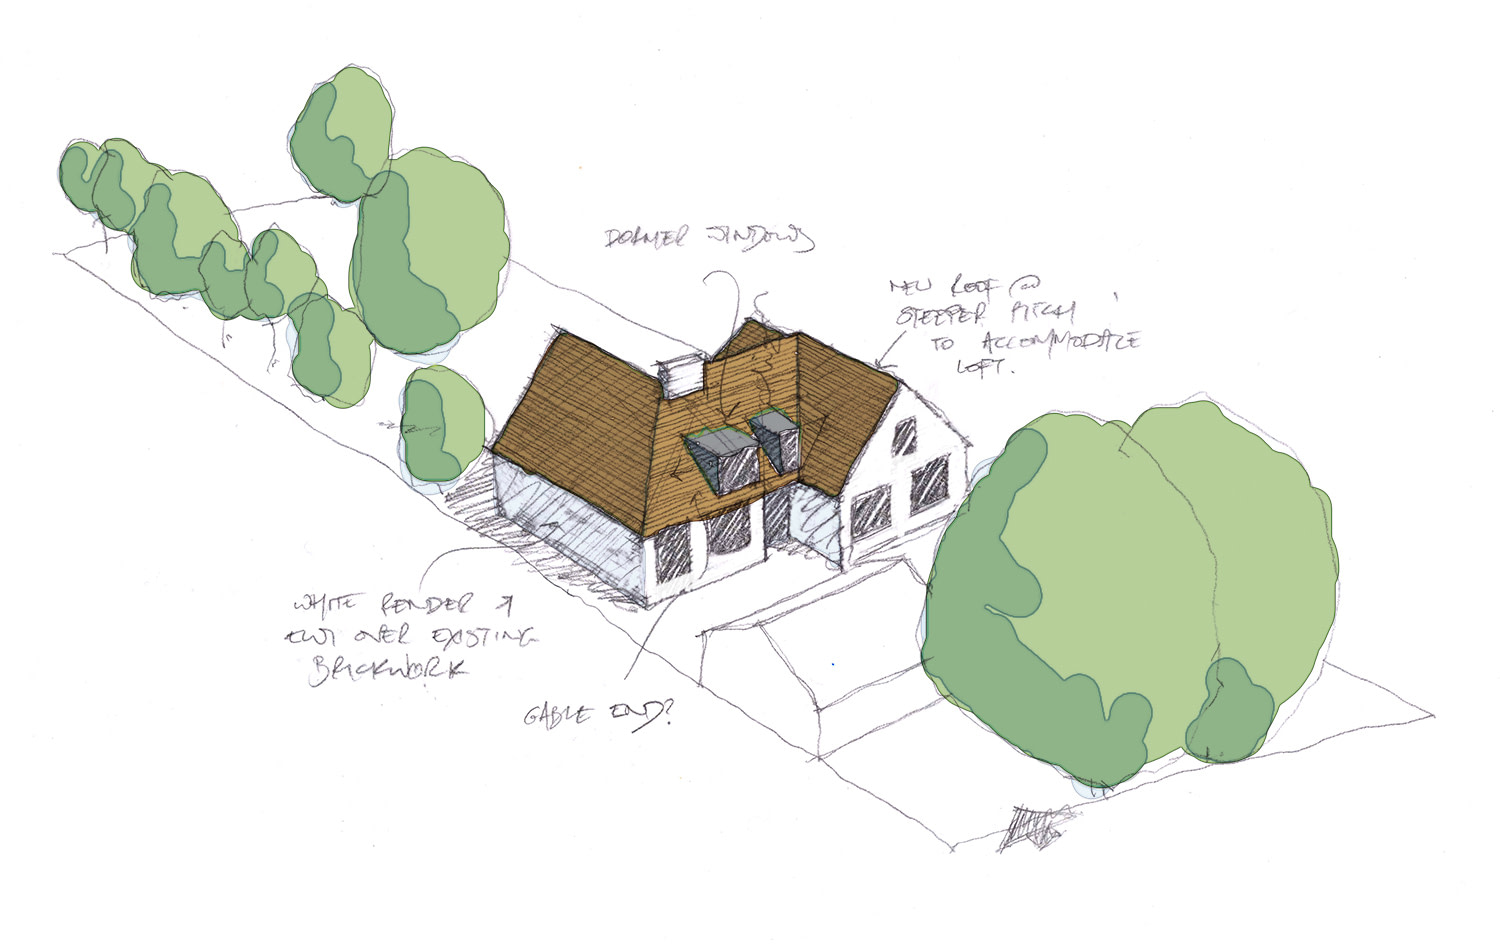 Initial sketch idea for the house, showing new render and external wall insulation to the external walls and a steeper pitch tiled roof to accommodate the new loft